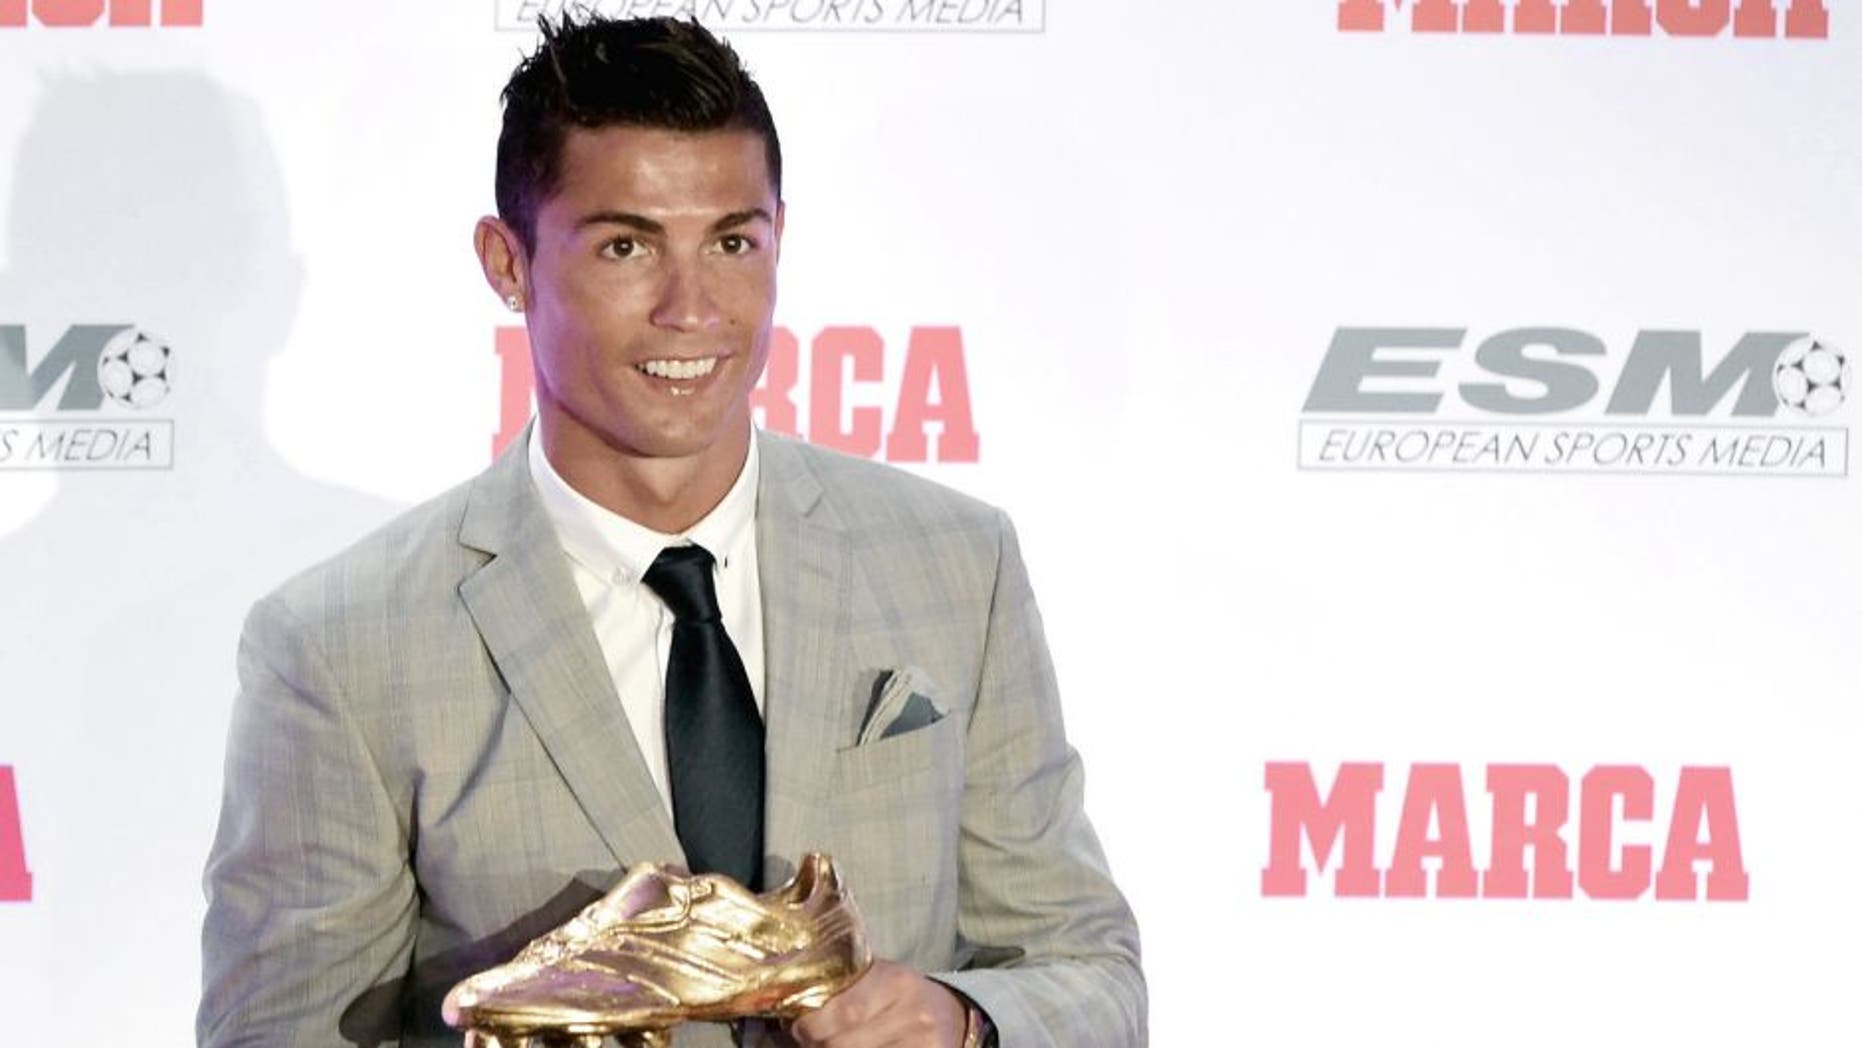 Real Madrid's Portuguese forward Cristiano Ronaldo poses with his fourth European Golden Shoe in Madrid, on October 13, 2015. Cristiano, who ended the season with 48 goals from 35 appearances, won the Golden Shoe in 2008 while he was at Manchester United, in 2011 with Real Madrid and shared it with Luis Suarez last year. AFP PHOTO / JAVIER SORIANO (Photo credit should read JAVIER SORIANO/AFP/Getty Images)